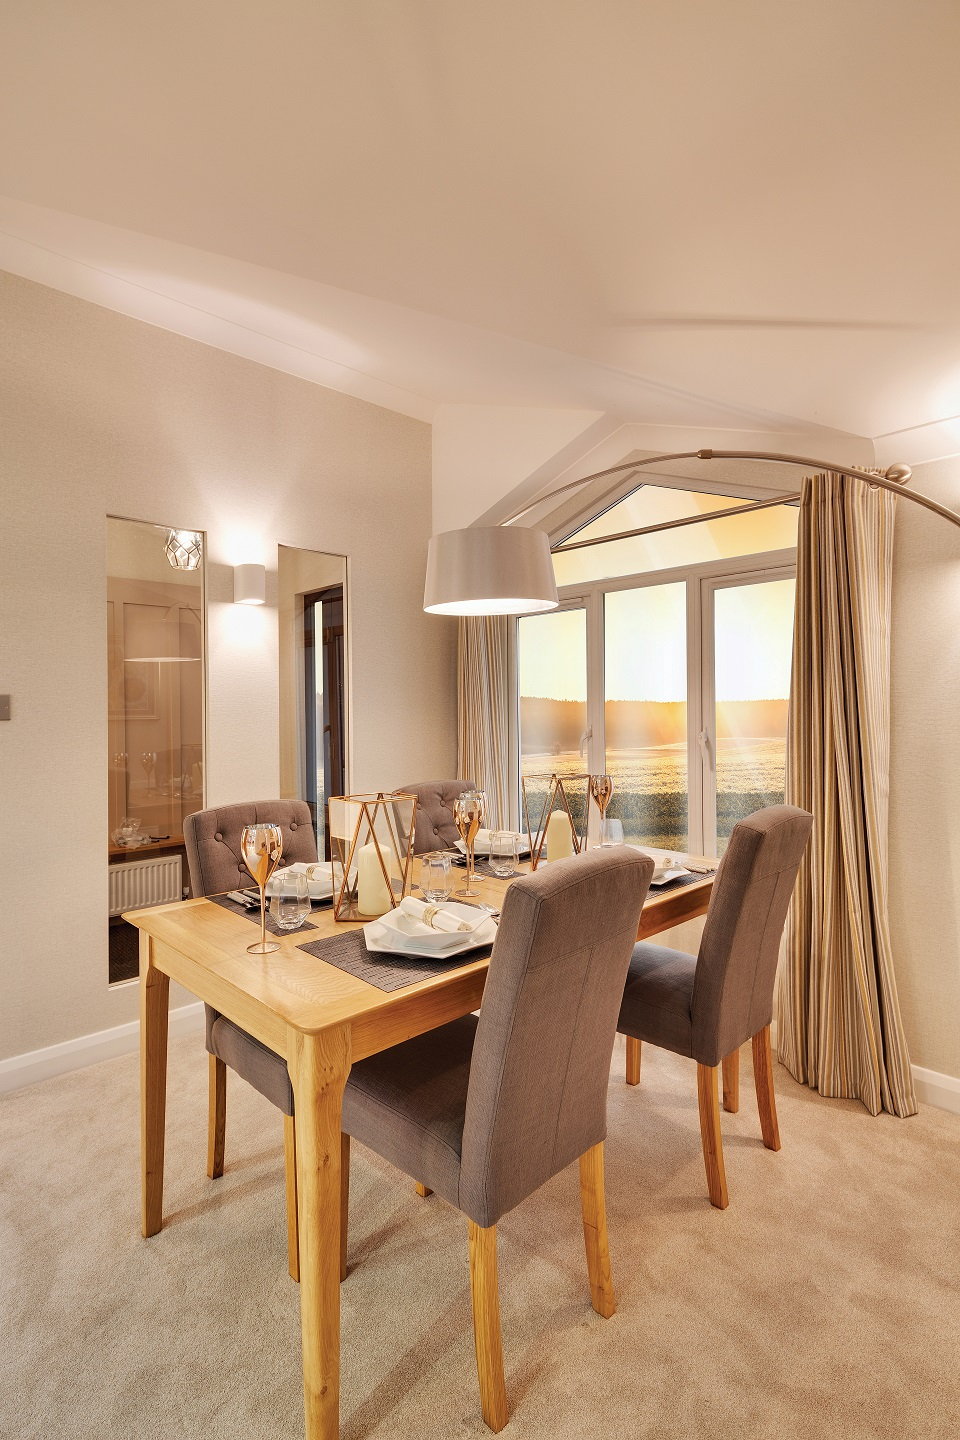 Willerby Delamere: New Holiday Lodges and Park Homes for Sale, Durham, Durham and Weardale Image 2